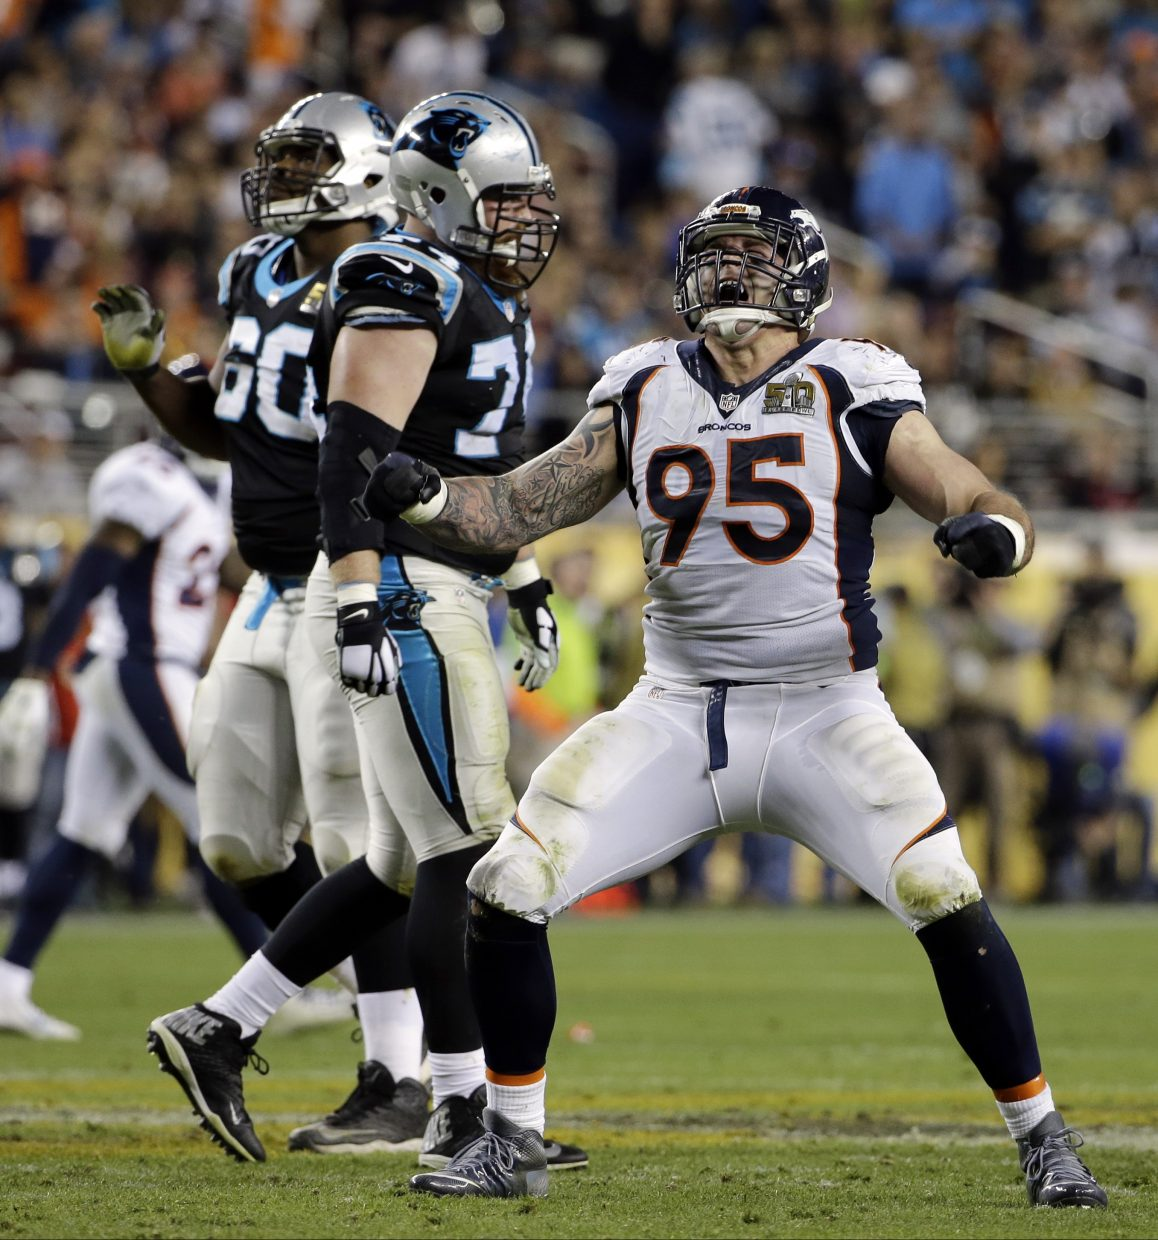 Denver Broncos' Derek Wolfe (95) celebrates after sacking Carolina Panthers' Cam Newton (1) during the second half of the NFL Super Bowl 50 football game Sunday, Feb. 7, 2016, in Santa Clara, Calif.  (AP Photo/Jeff Chiu)